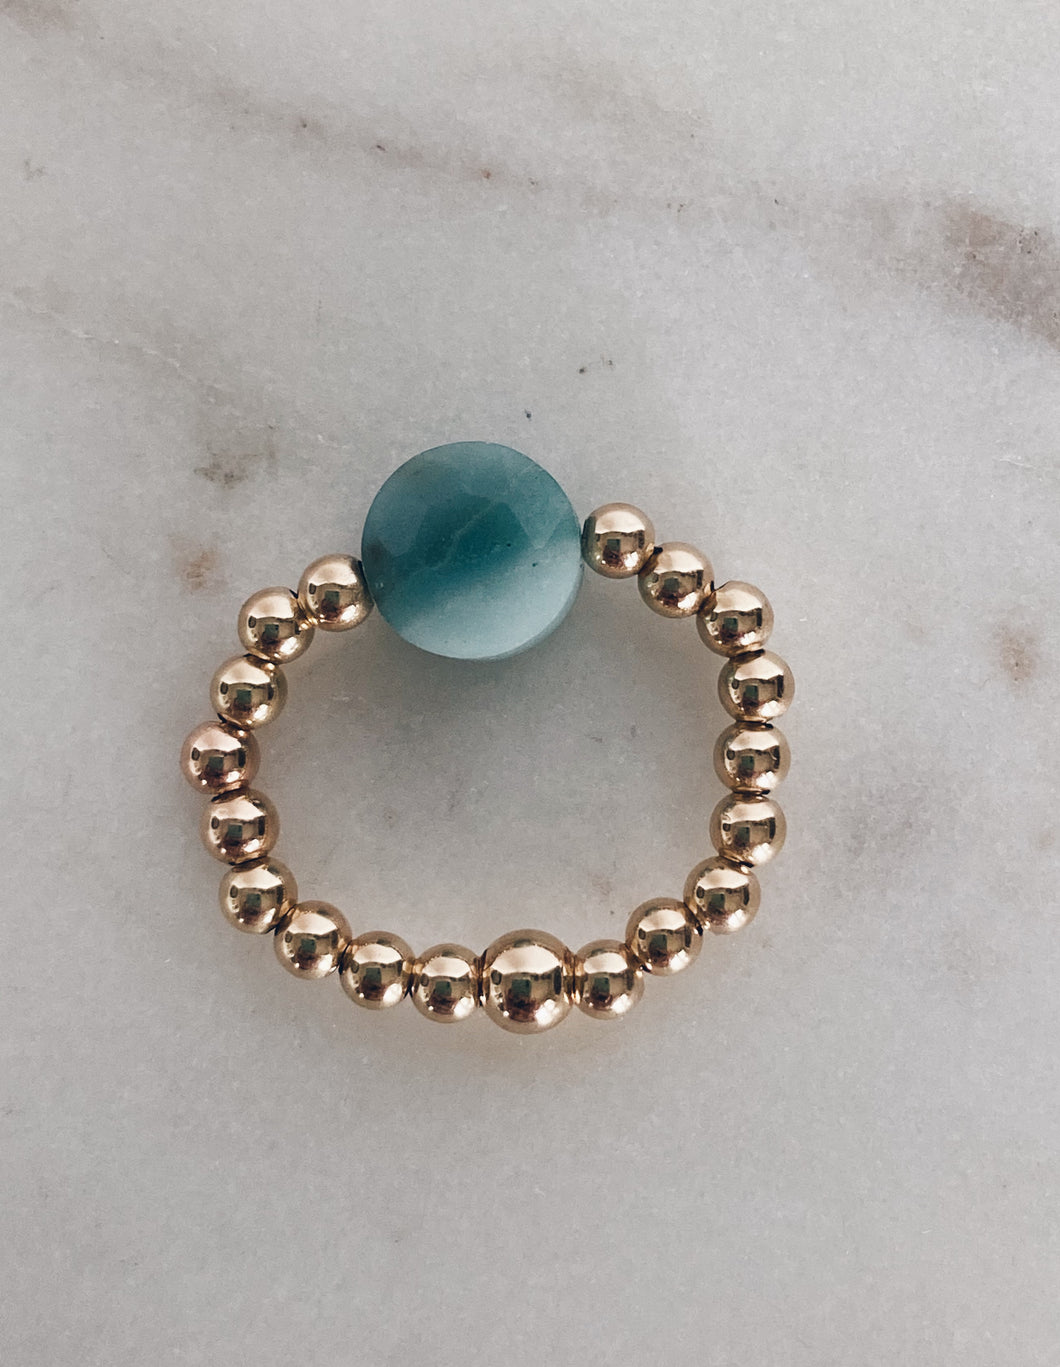 14k Gold Fill Beaded & Amazonite Coin Ring